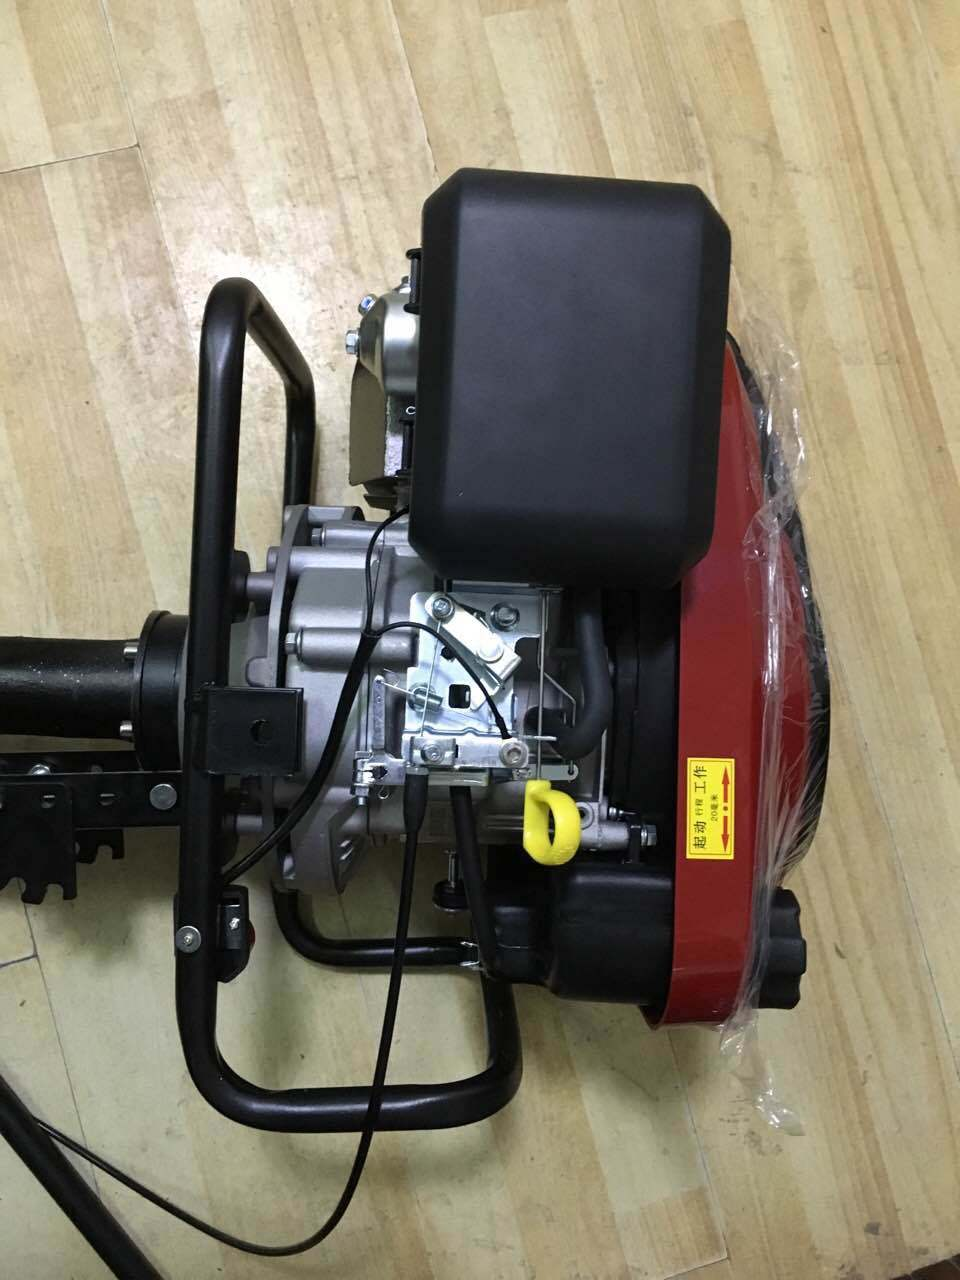 4-Cycle 196cc Outboard Motor Outboard Engine